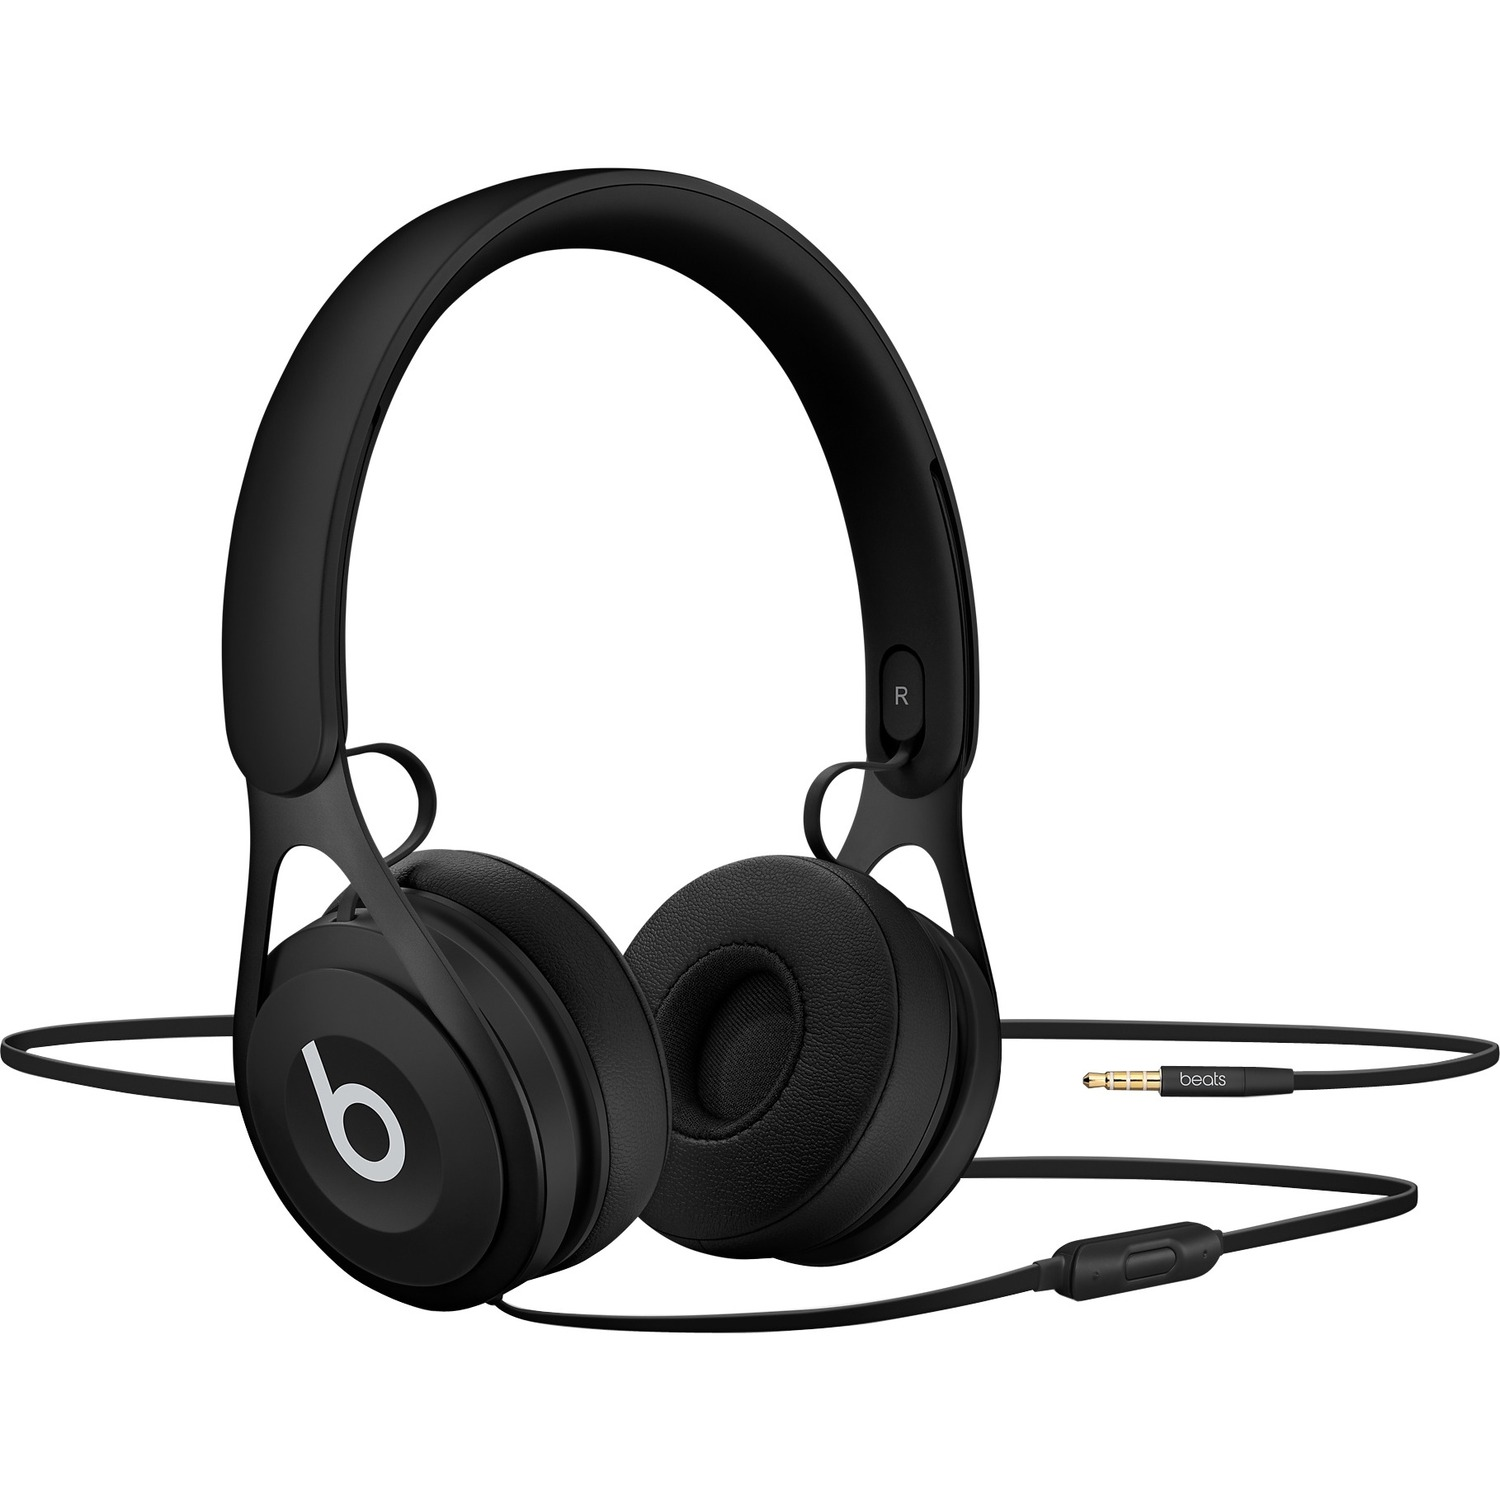 Beats by Dr. Dre EP Wired Stereo Headset - Over-the-head - Supra-aural - Black - Mini-phone